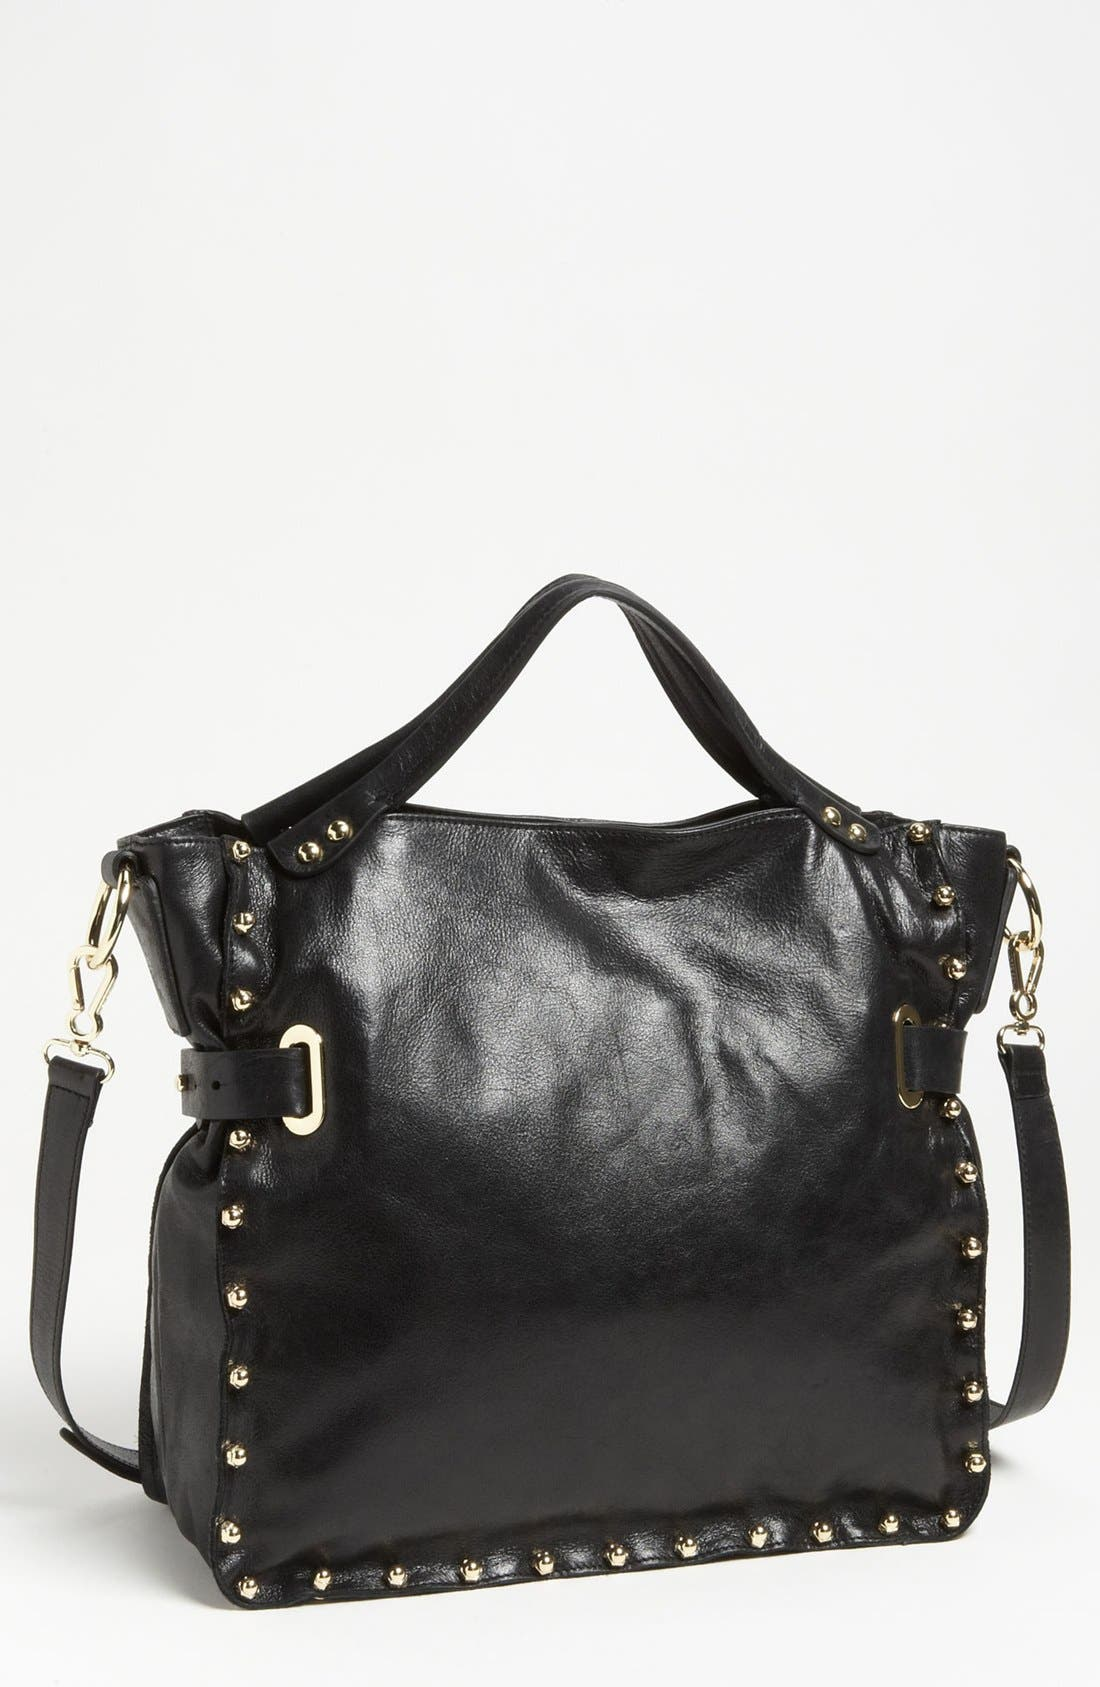 Alternate Image 1 Selected - Vince Camuto 'Bolts' Tote